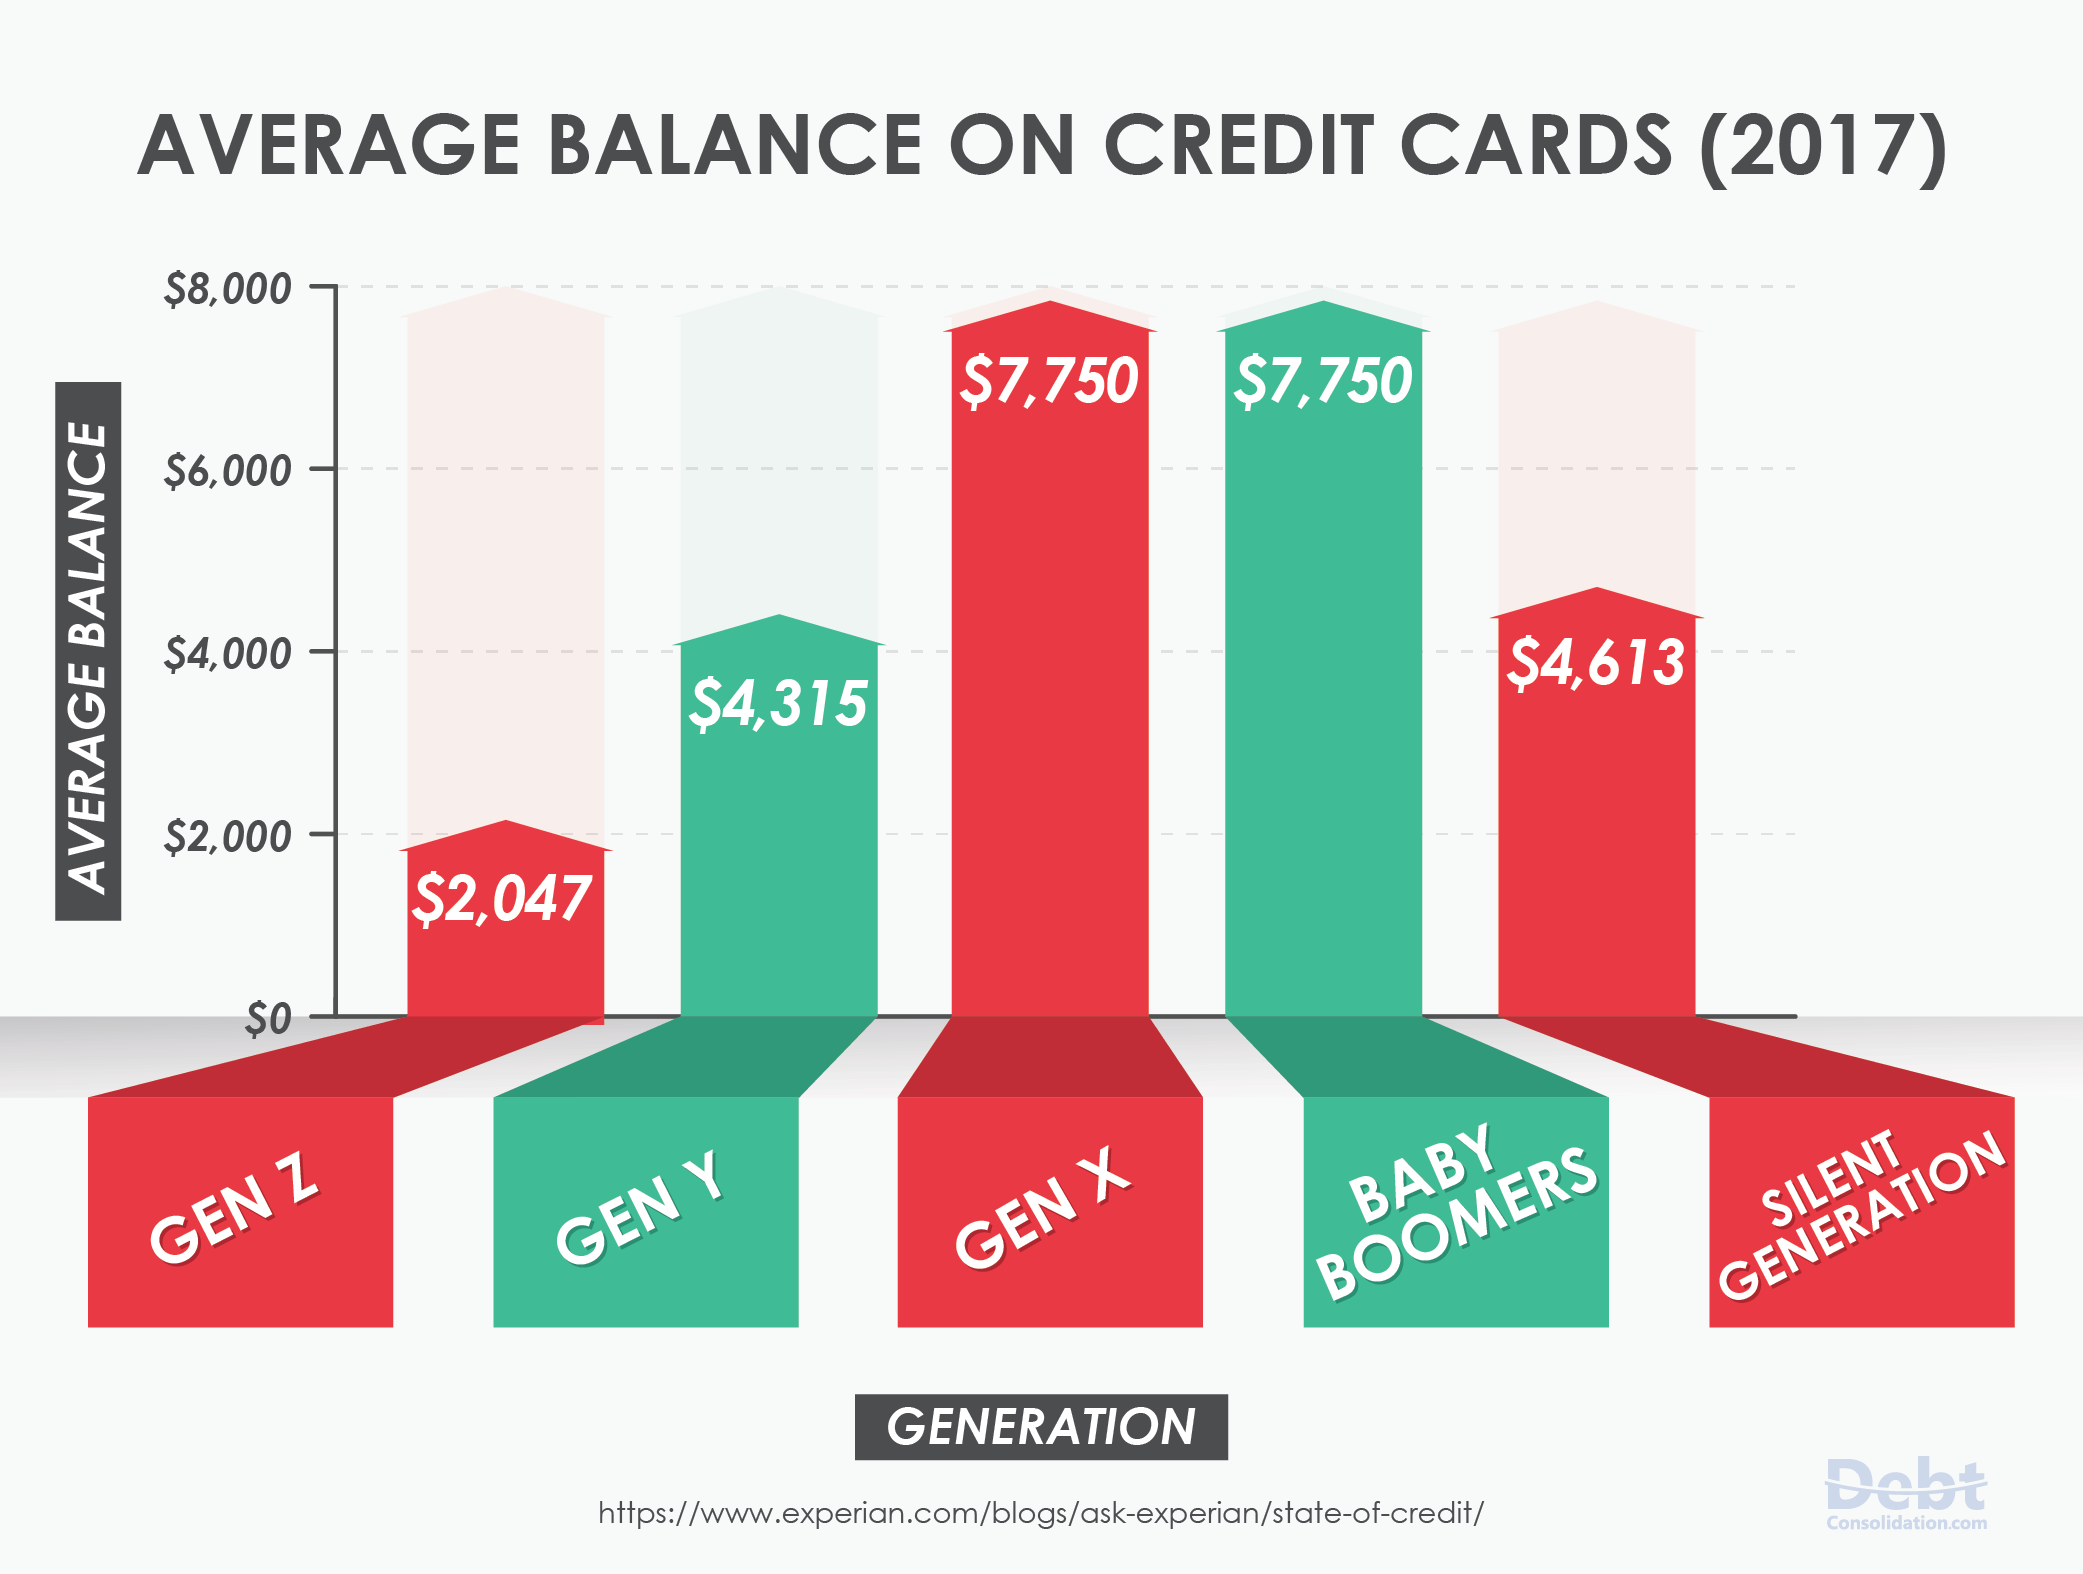 2017 Average Balance on Credit Cards